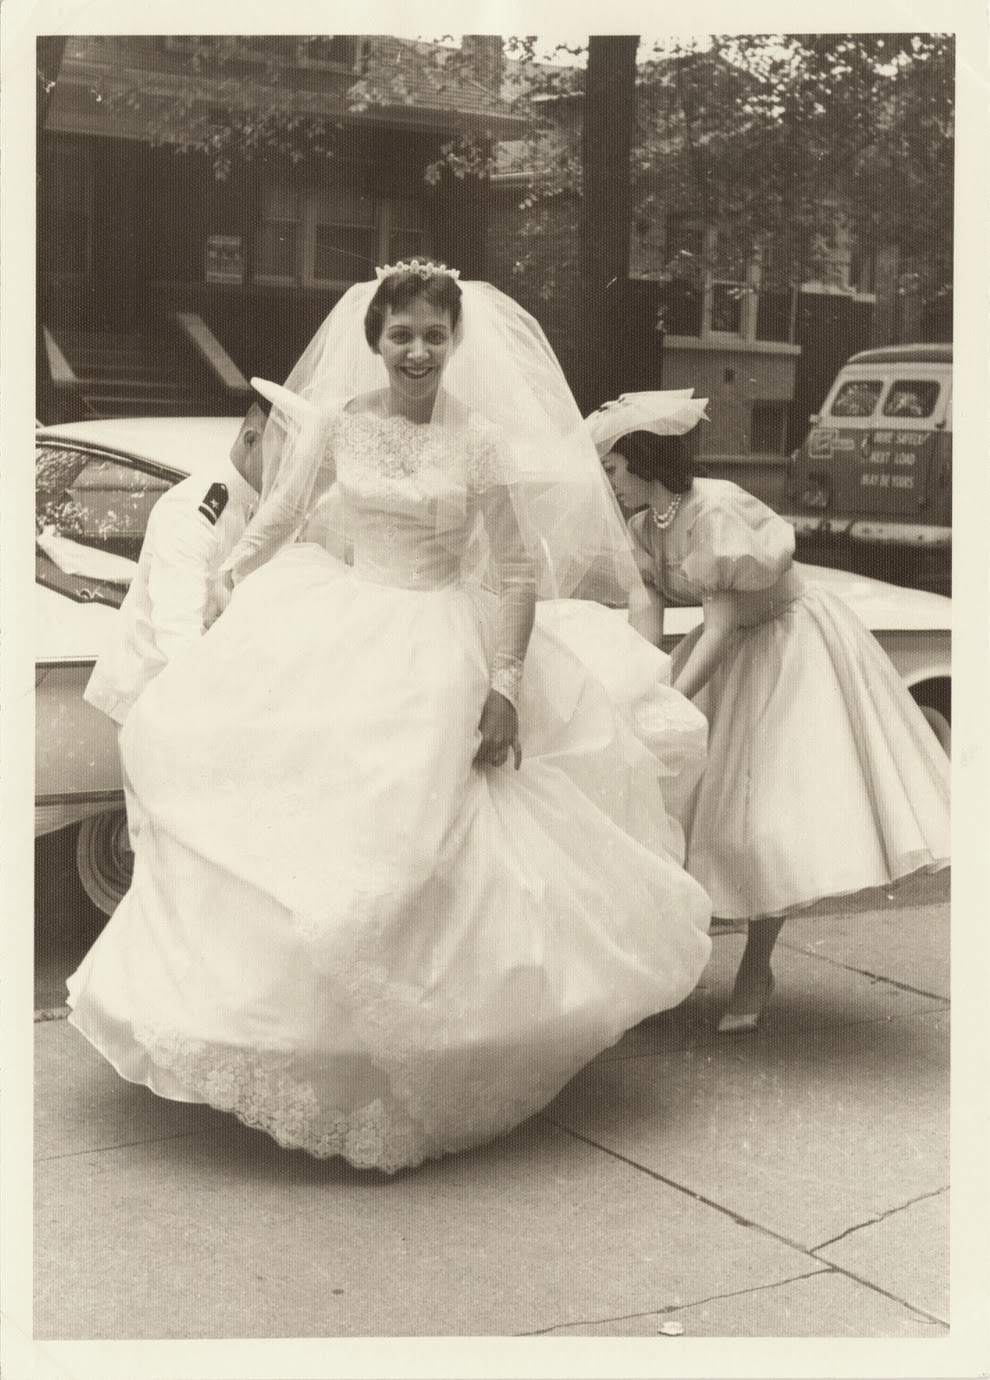 Adorable Real Vintage Wedding Photos From the 1960s ...